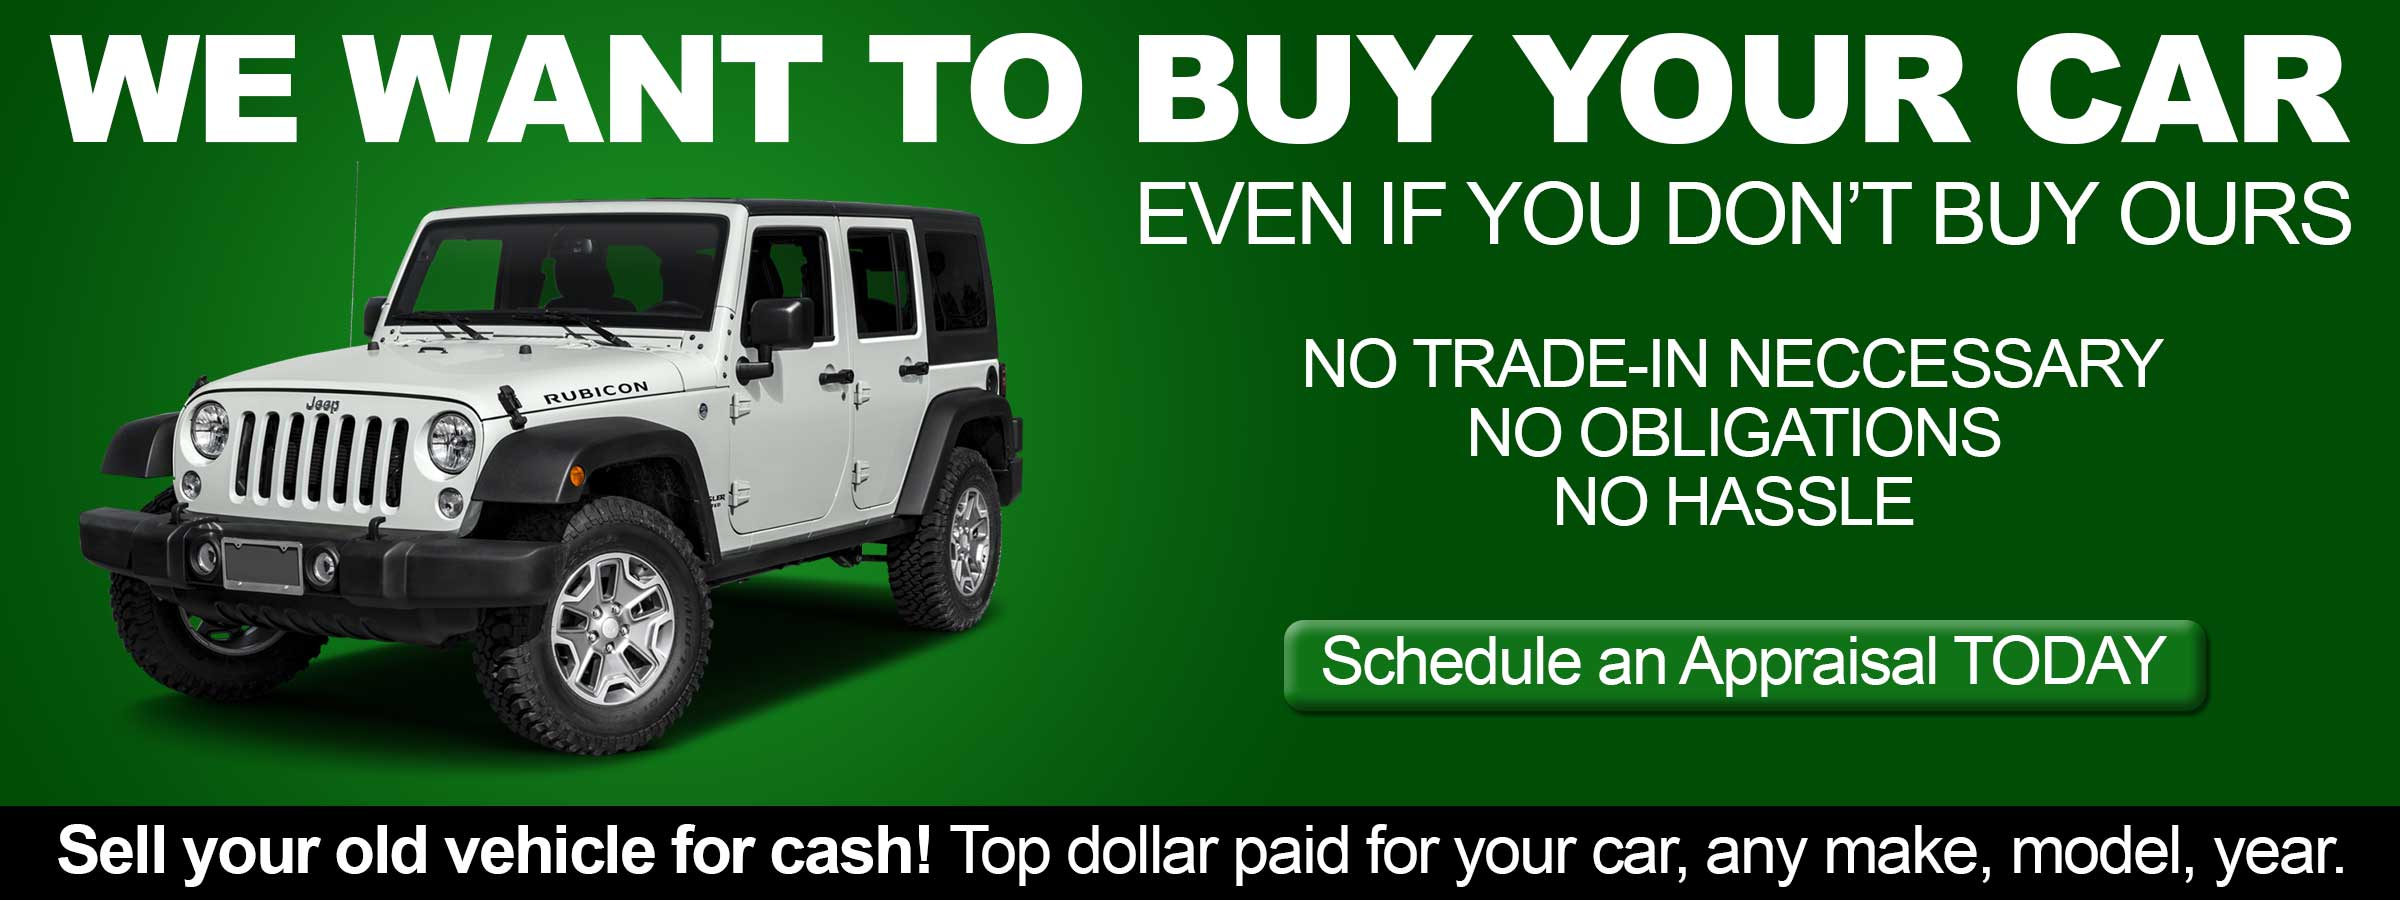 Used Car Dealer in Burleson, TX, Sell your Old Vehicle, any make, model, year and get Top paid Dollar for your car.